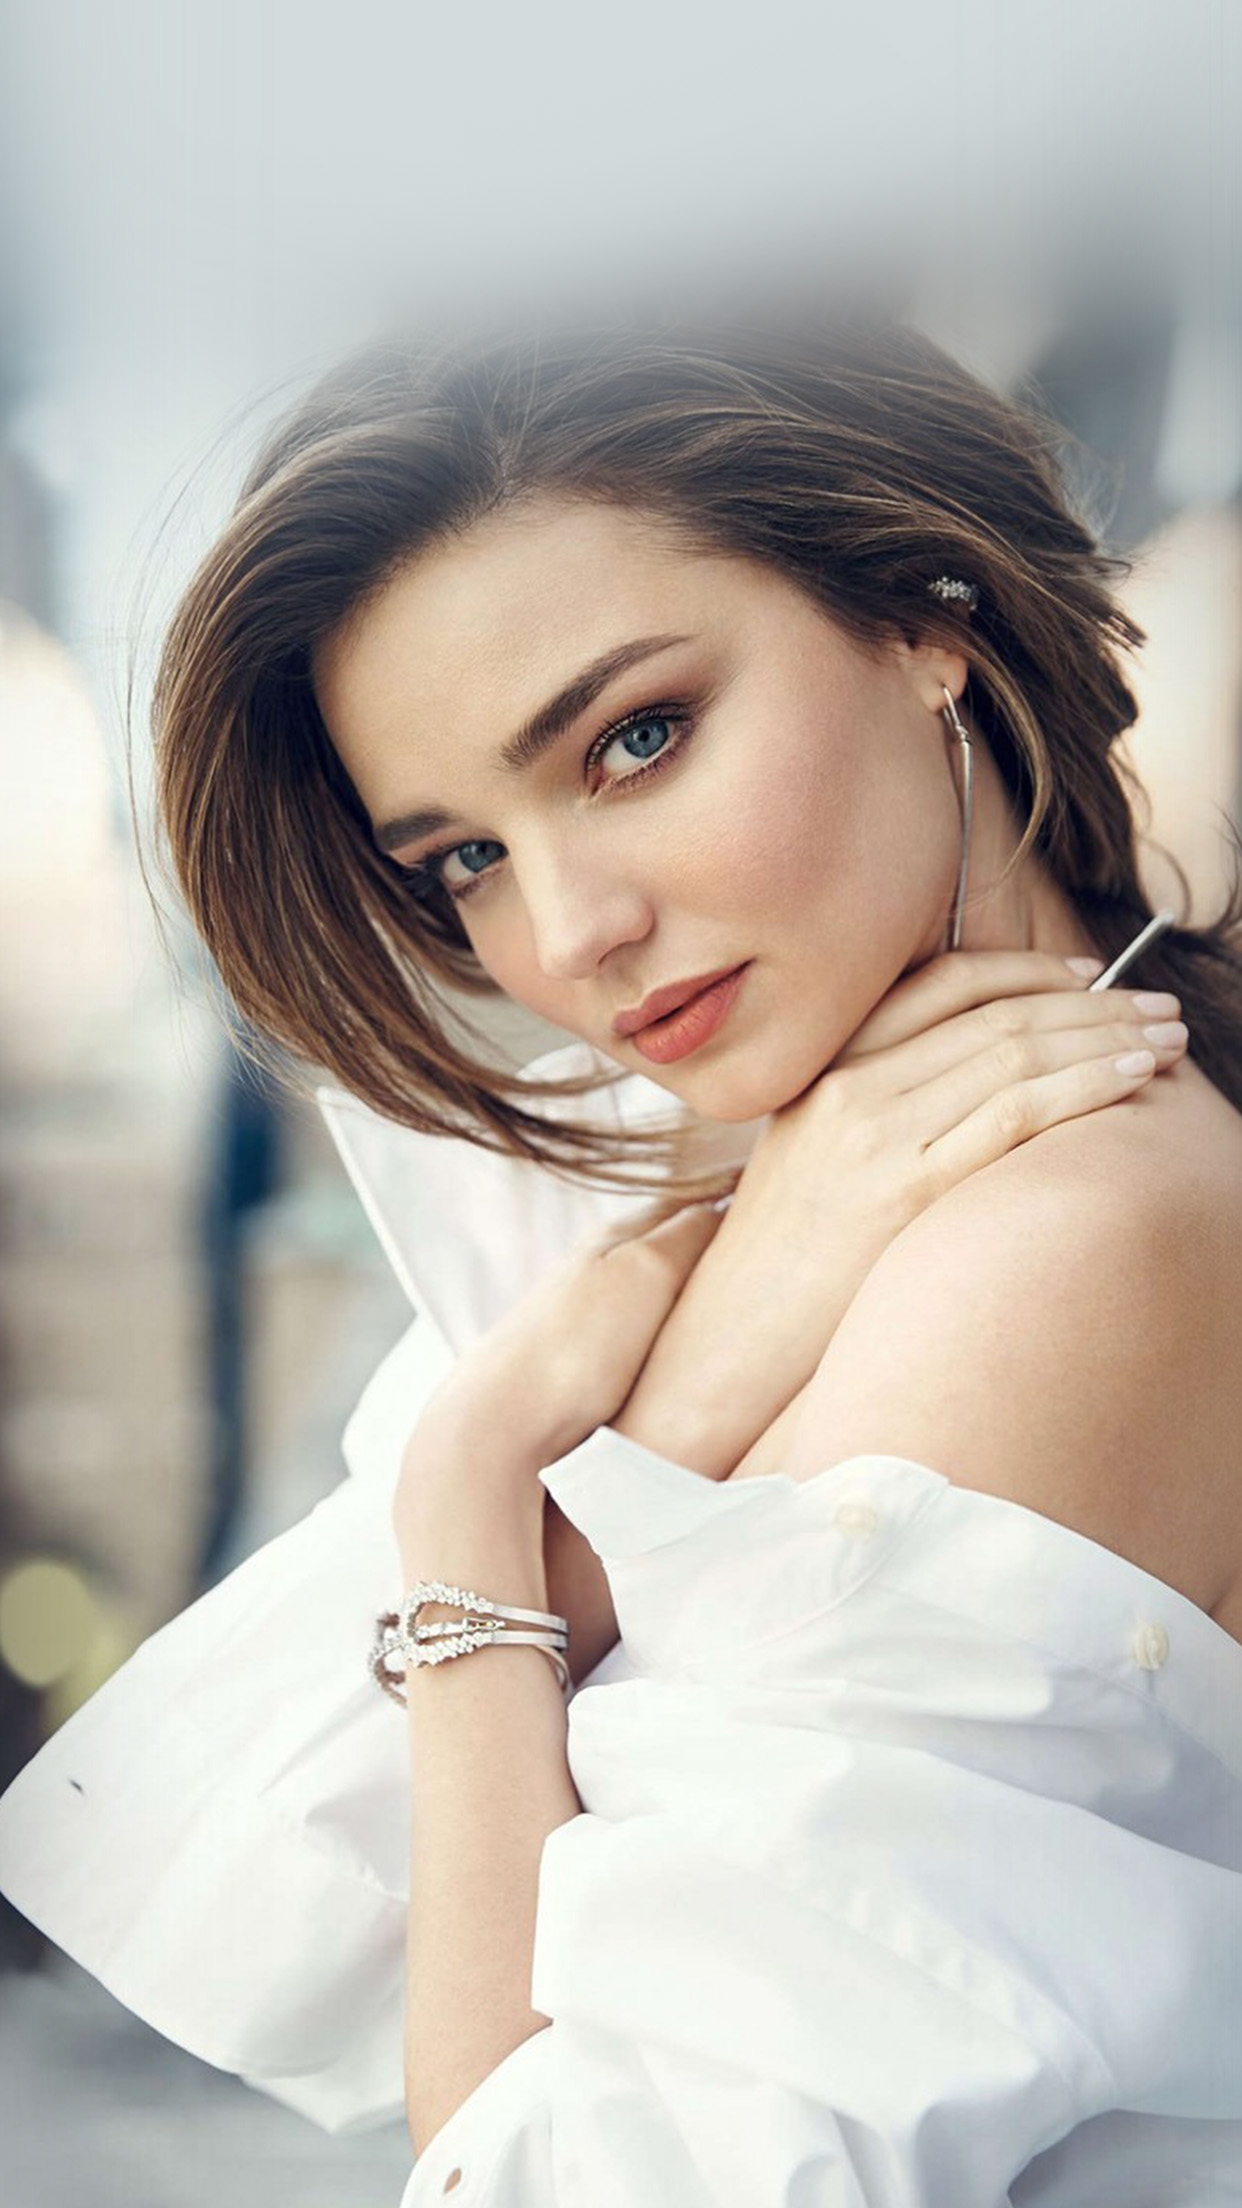 Hq20 Miranda Kerr Girl Dress White Beauty Wallpaper